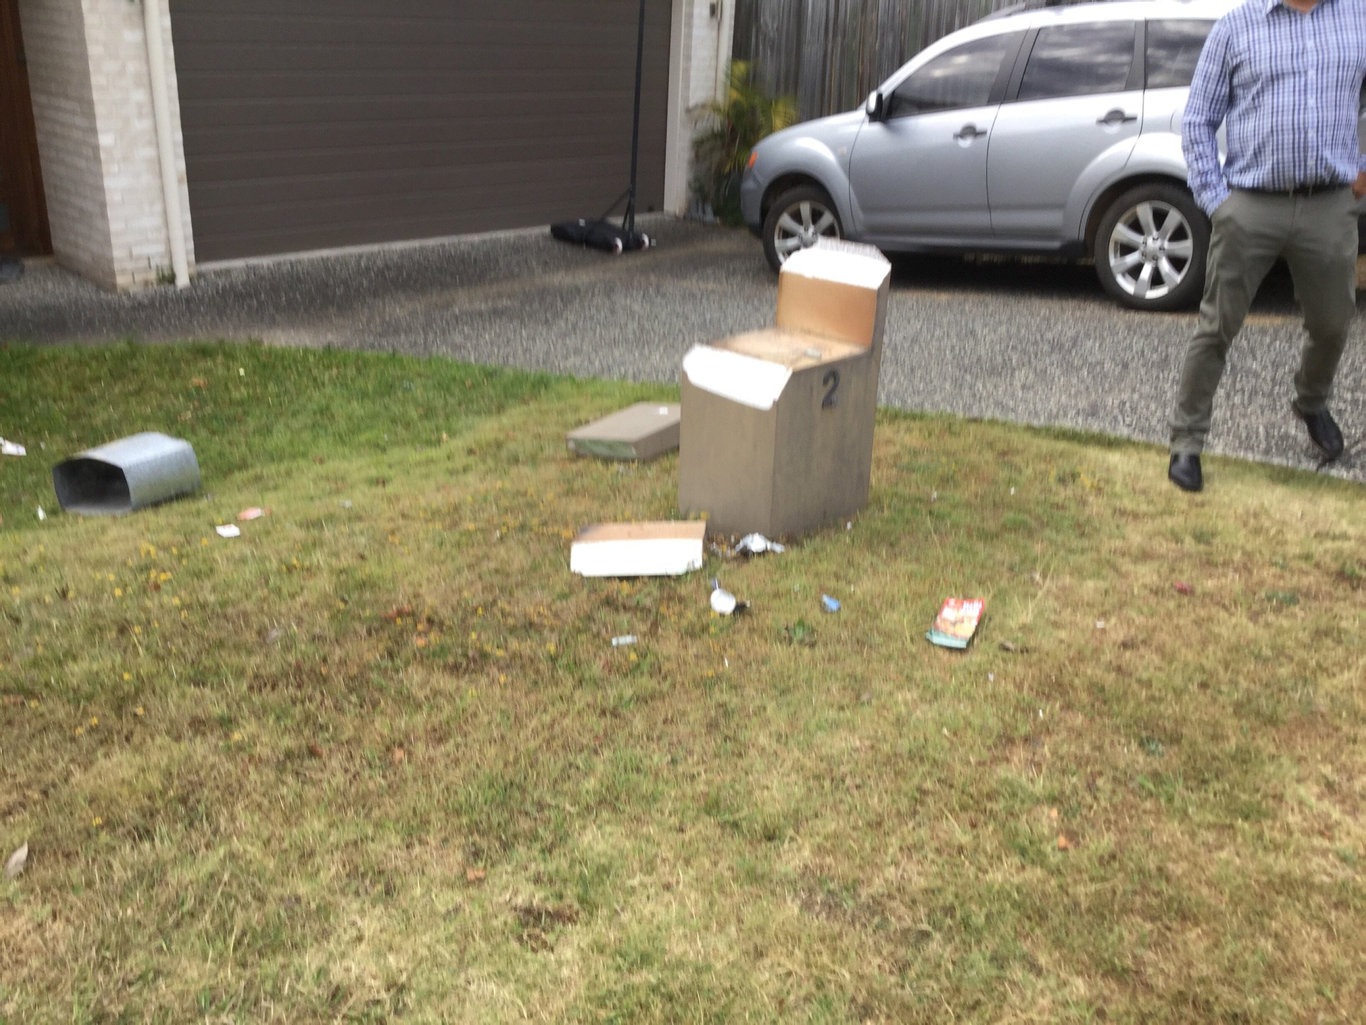 Sunshine Coast police have expressed concerns it may only be a matter of time before someone is seriously injured following a recent spate of letterbox bombings.